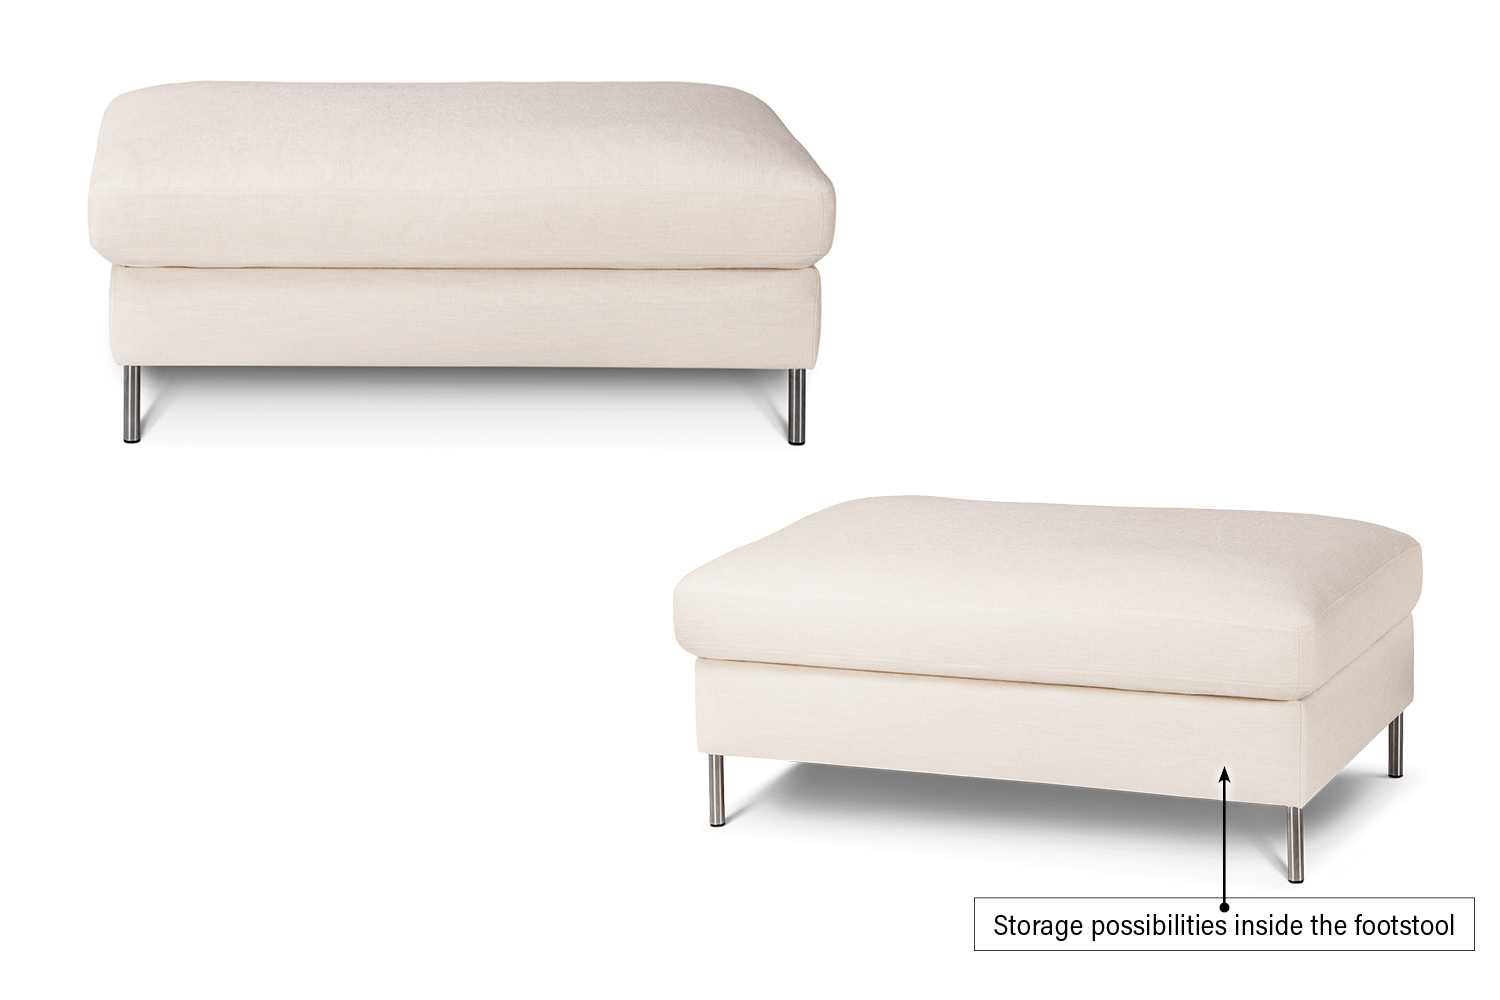 In picture: Colorado 4 footstool. Fabric: Bronco 5208. Leg 48, stainless steel.